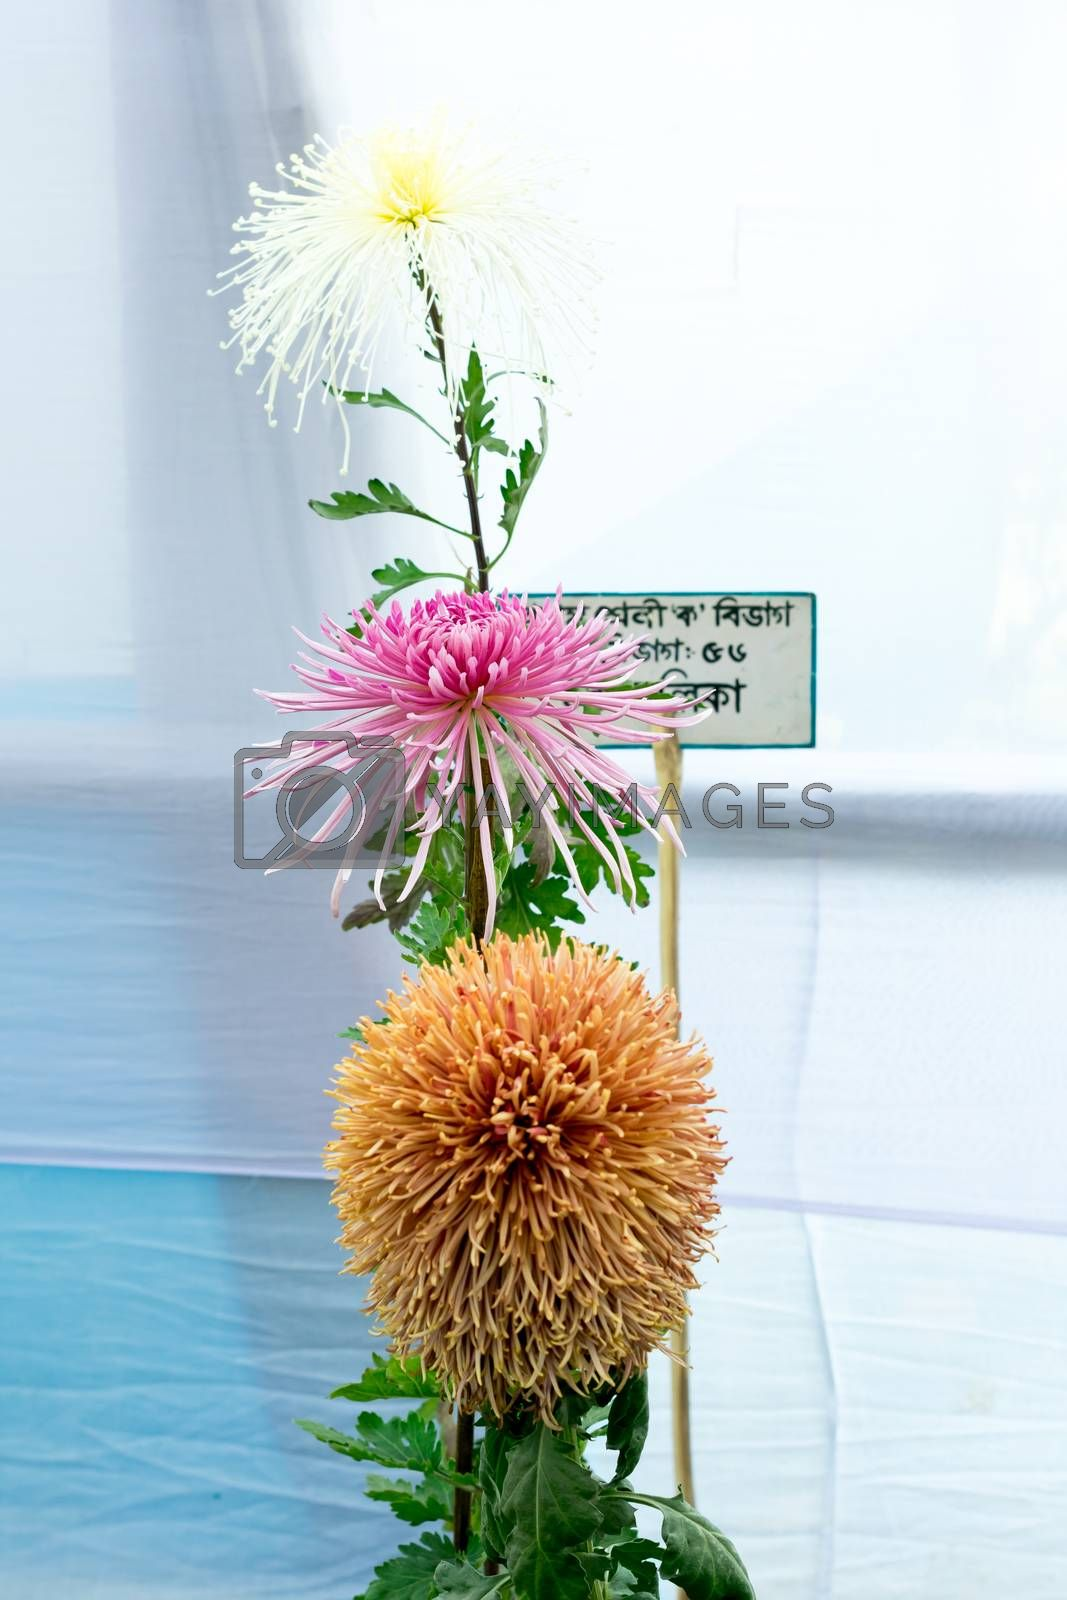 Kolkata Horticulture Society, West Bengal, India May 2019 - Bee Balm and Dahlia tulip flowers in full bloom at an annual flower show in an exotic exhibit of tropical flowers show in Kolkata India.